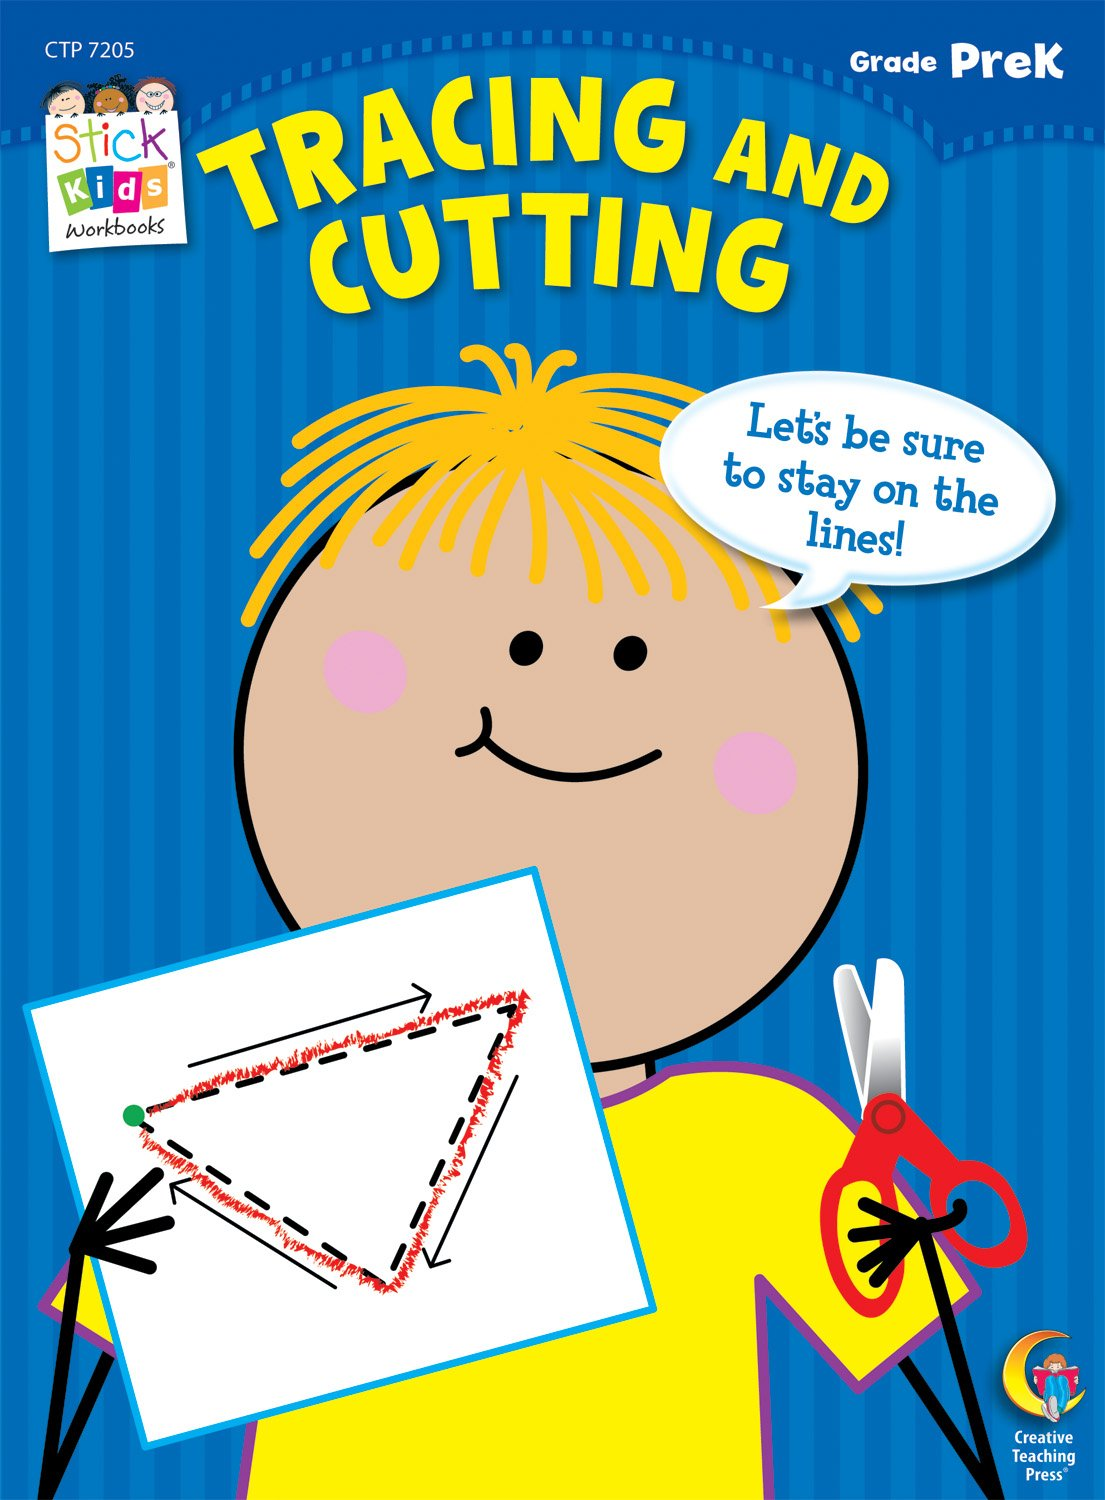 Workbooks prek workbooks : Tracing and Cutting Stick Kids Workbook, Grade PreK (Stick Kids ...